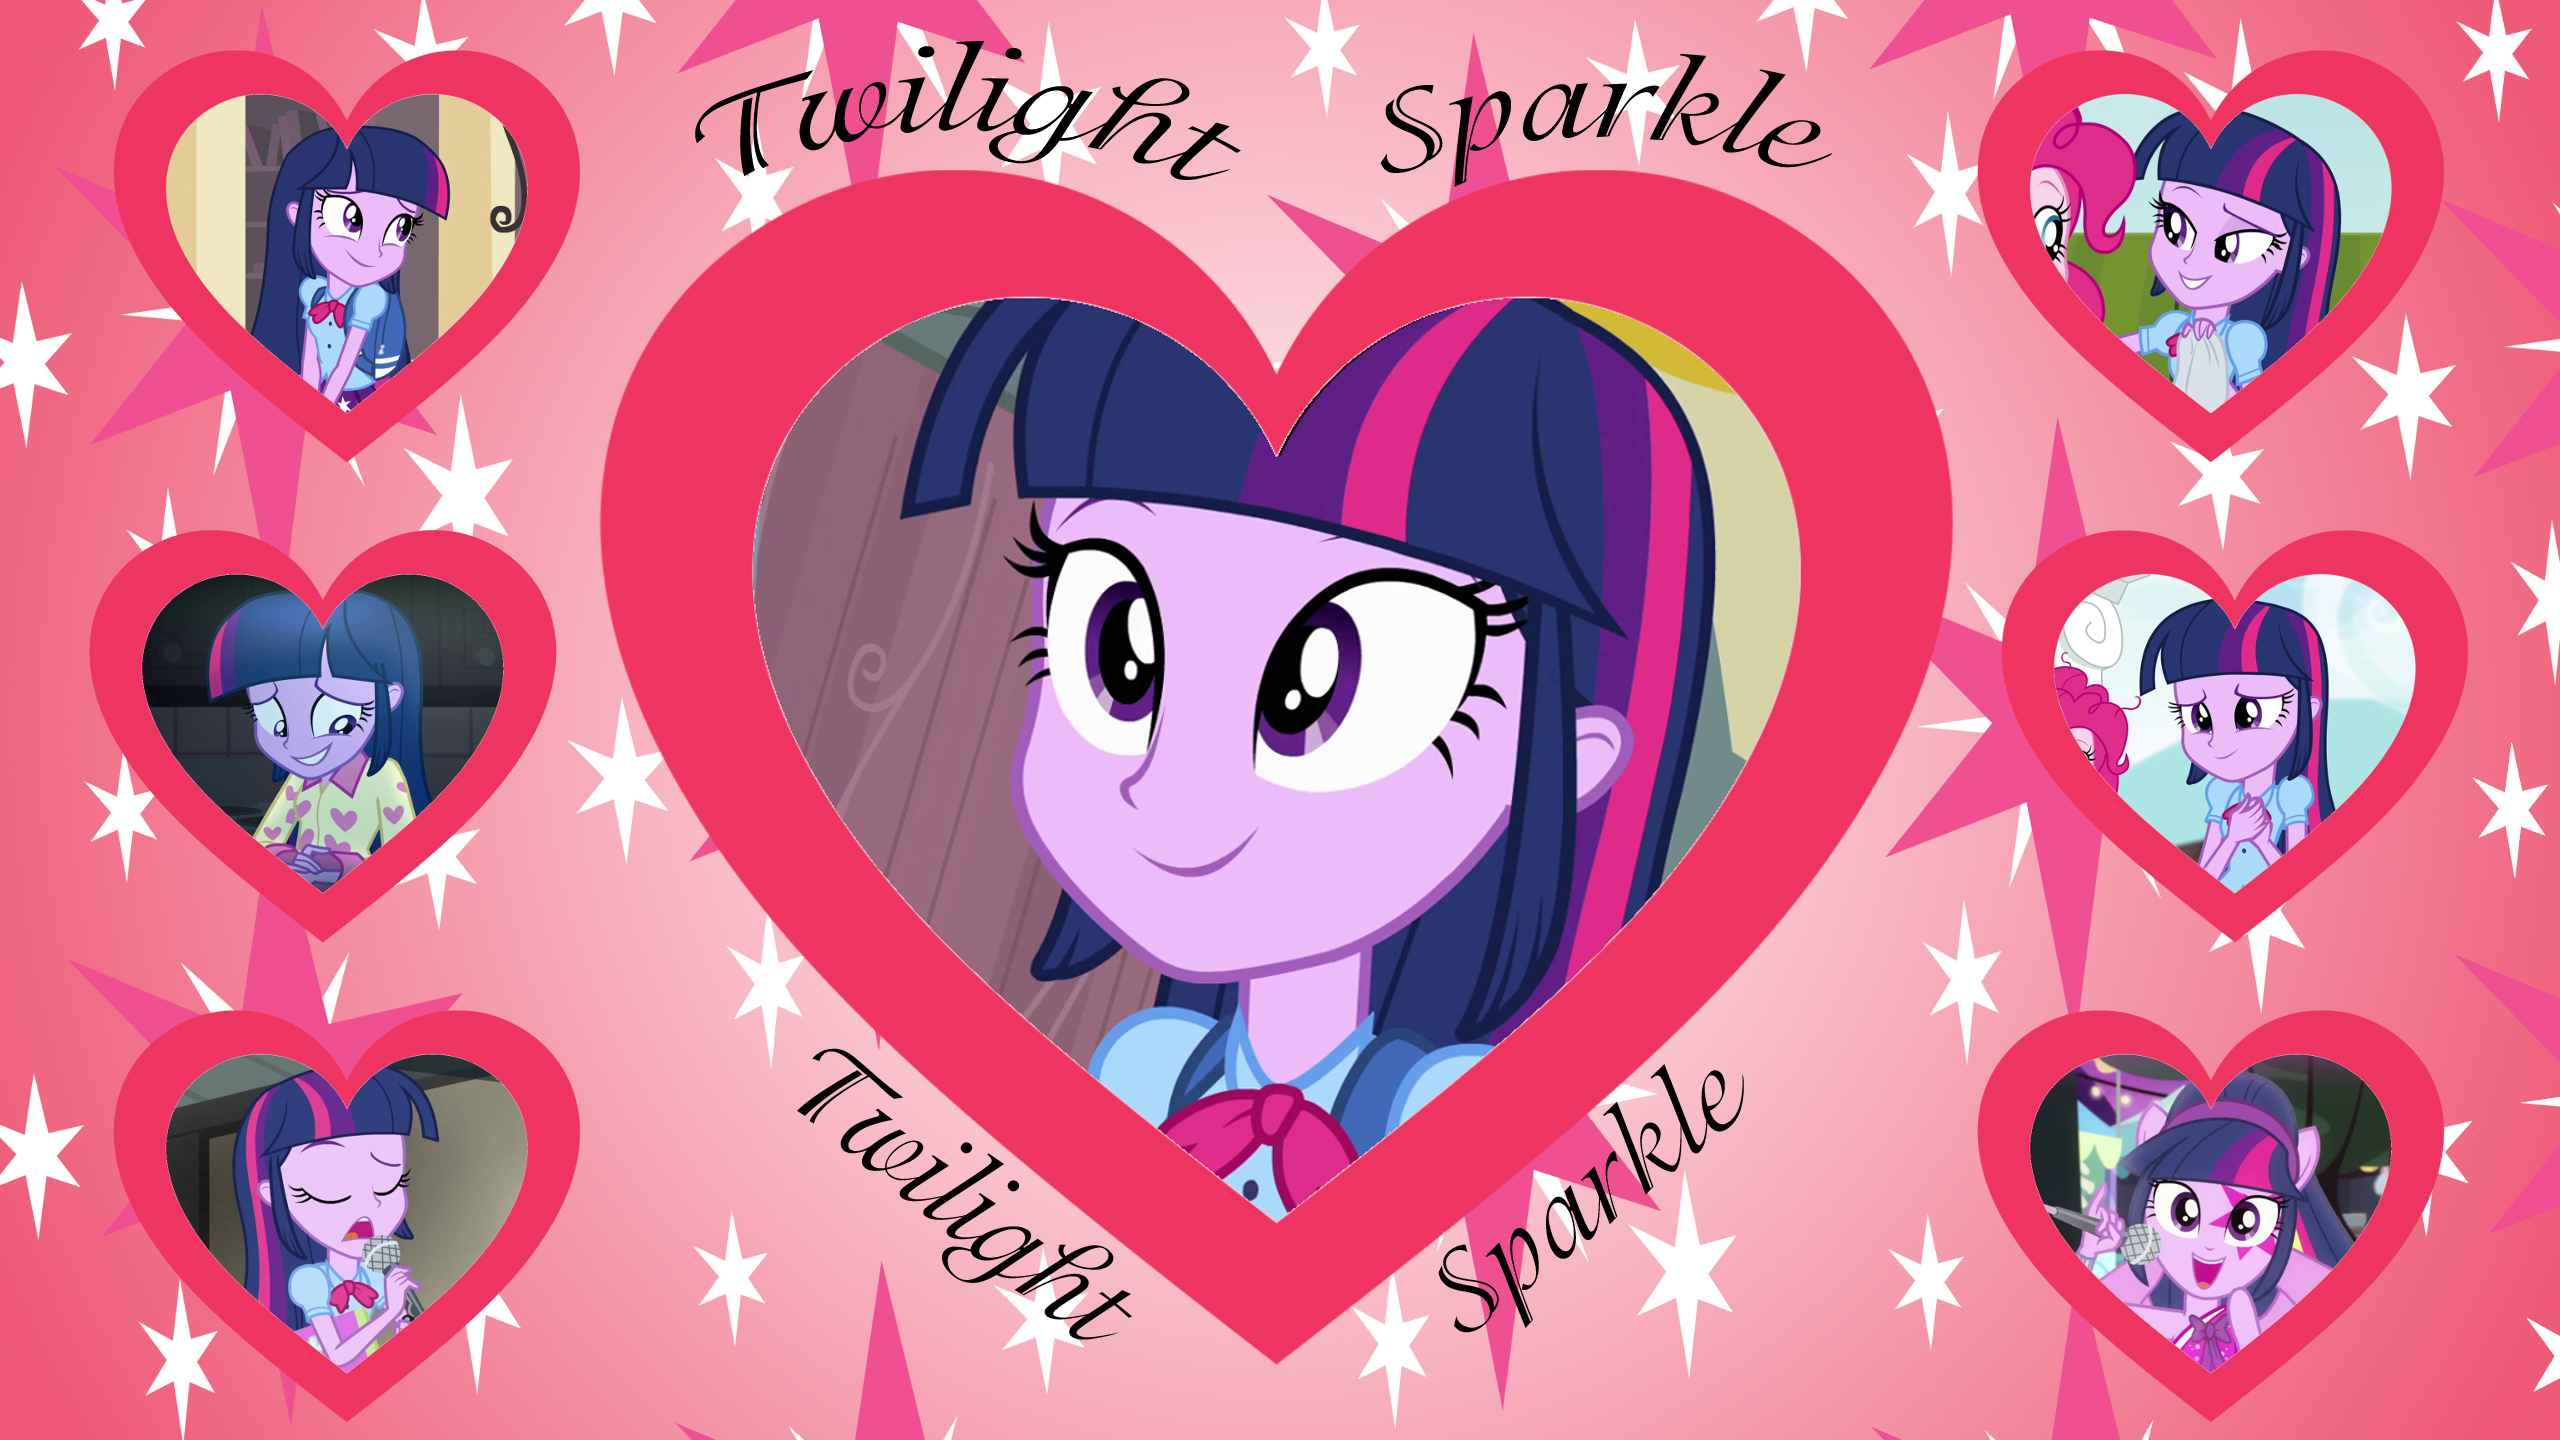 Eqg Twilight Sparkle Wallpaper By Sonork91 On Deviantart